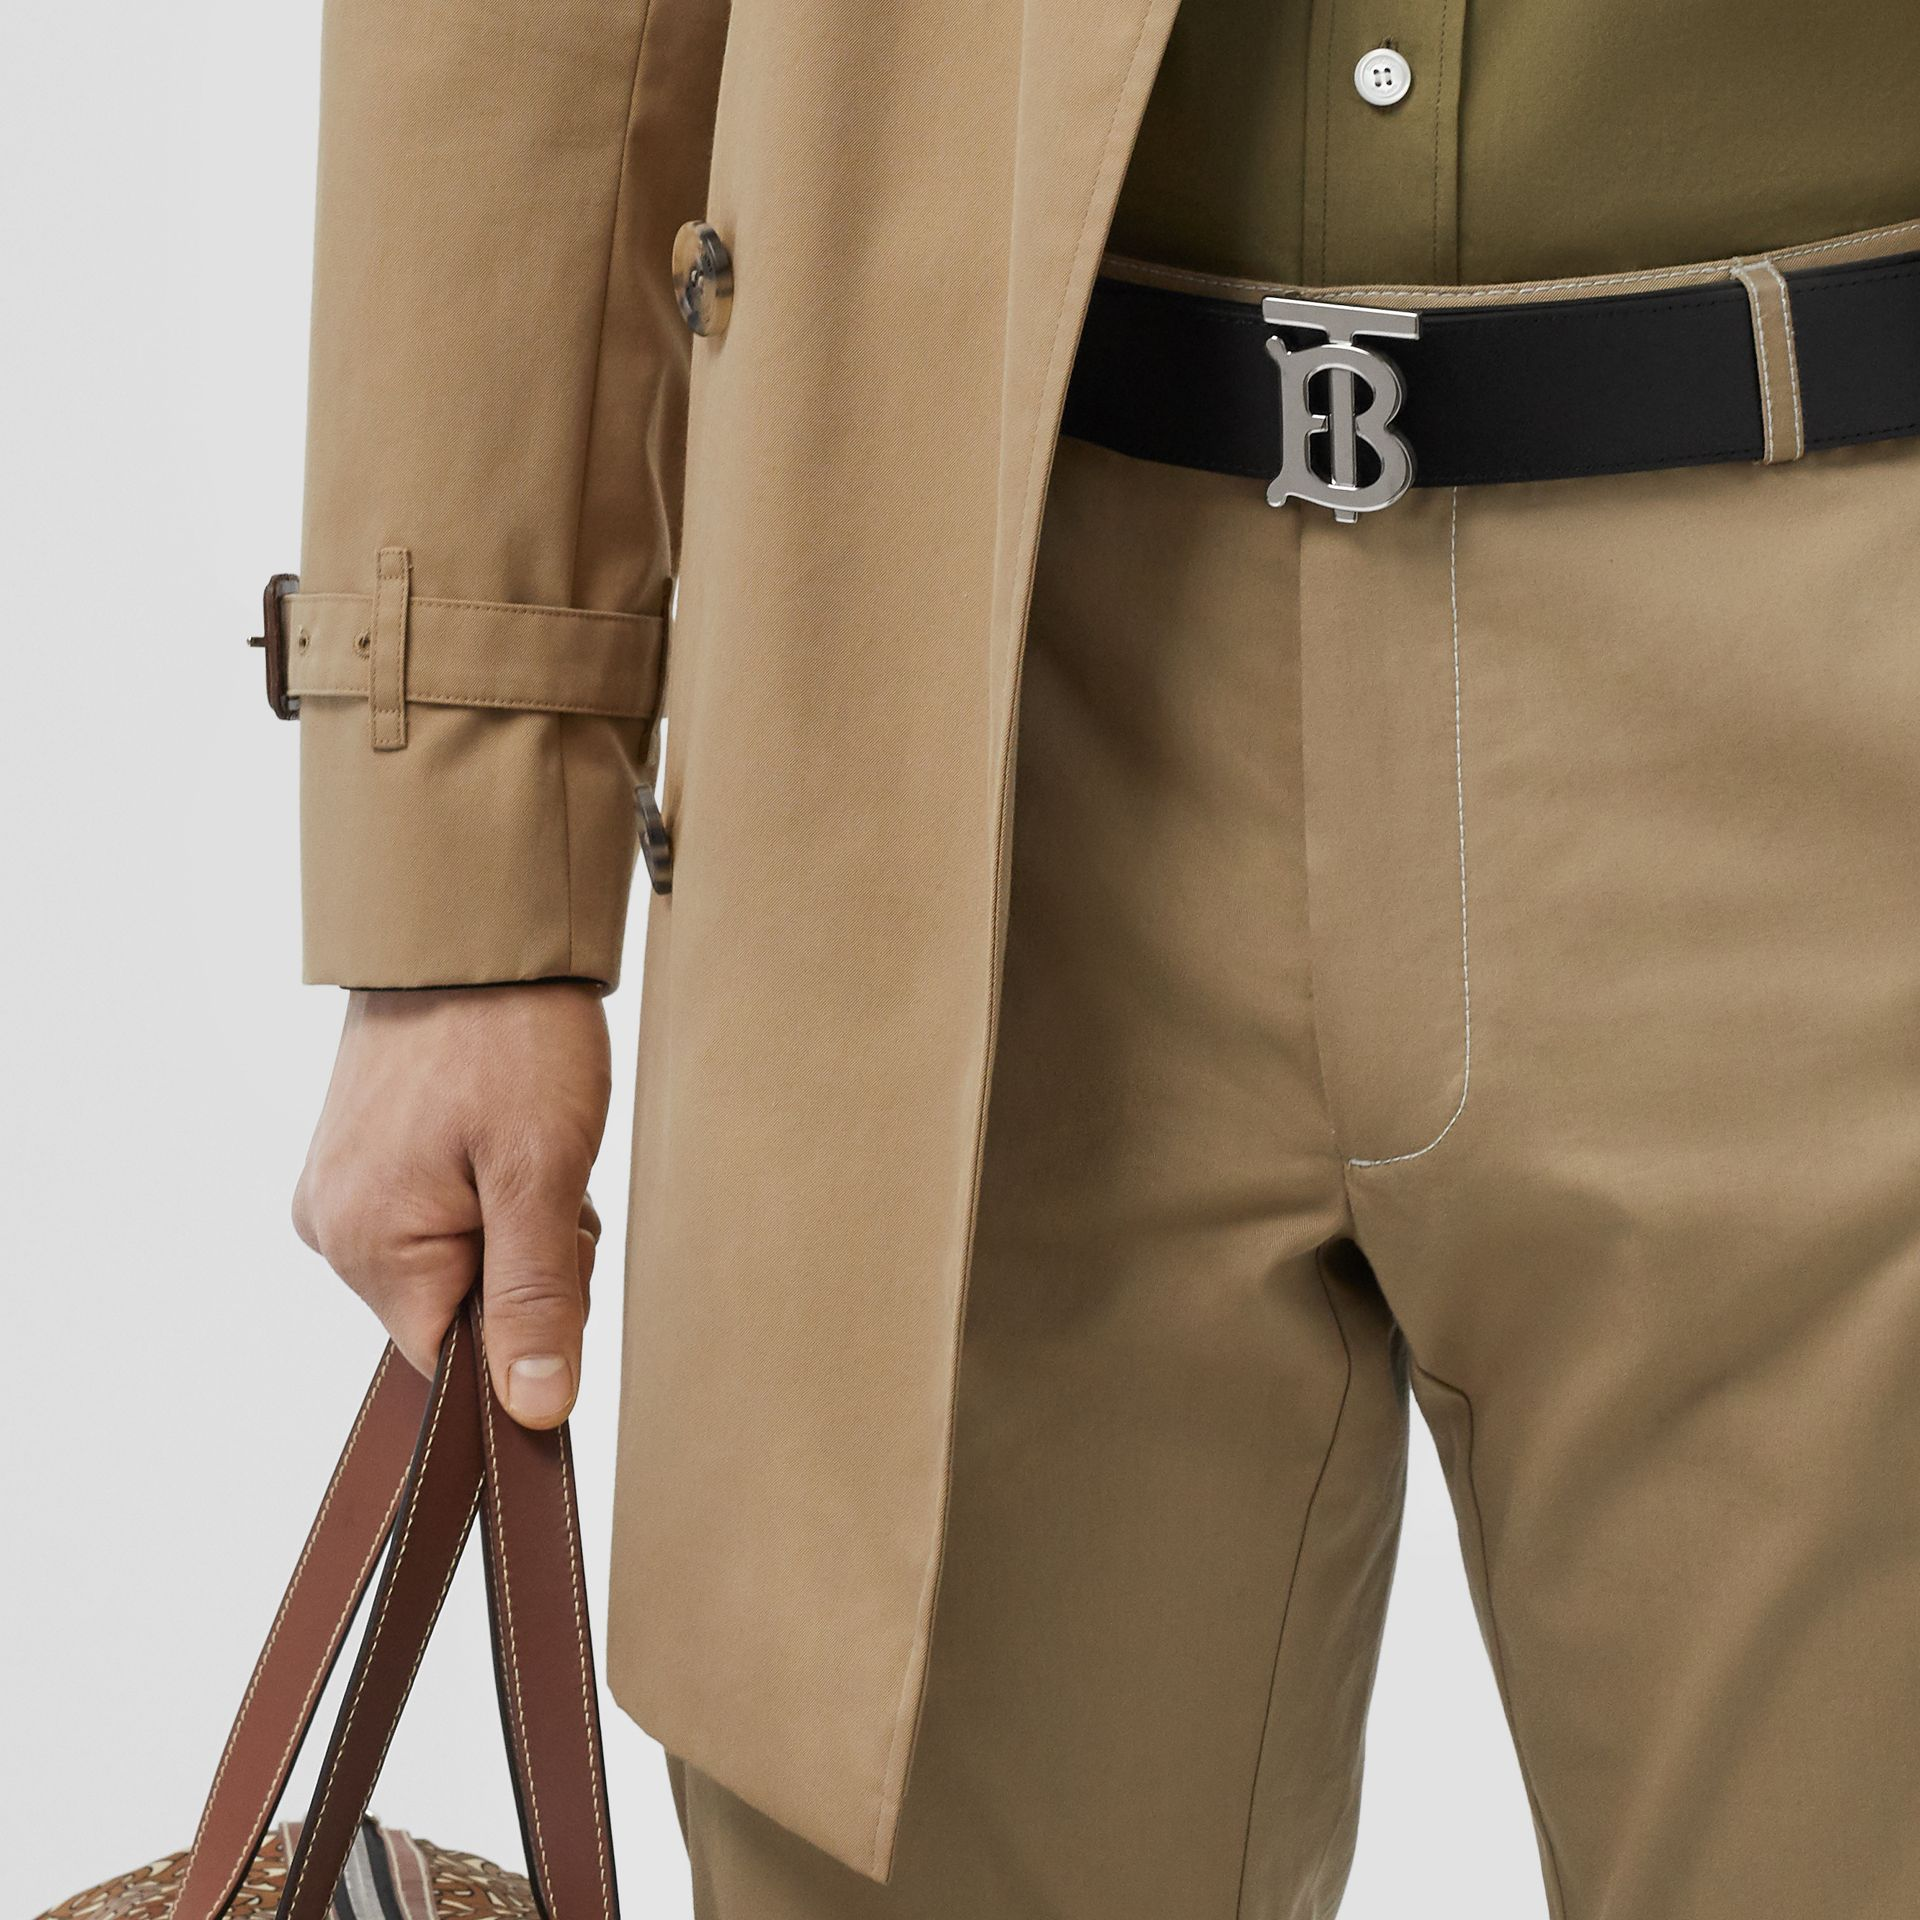 Reversible Monogram Motif Leather Belt in Tan/black - Men | Burberry Australia - gallery image 7